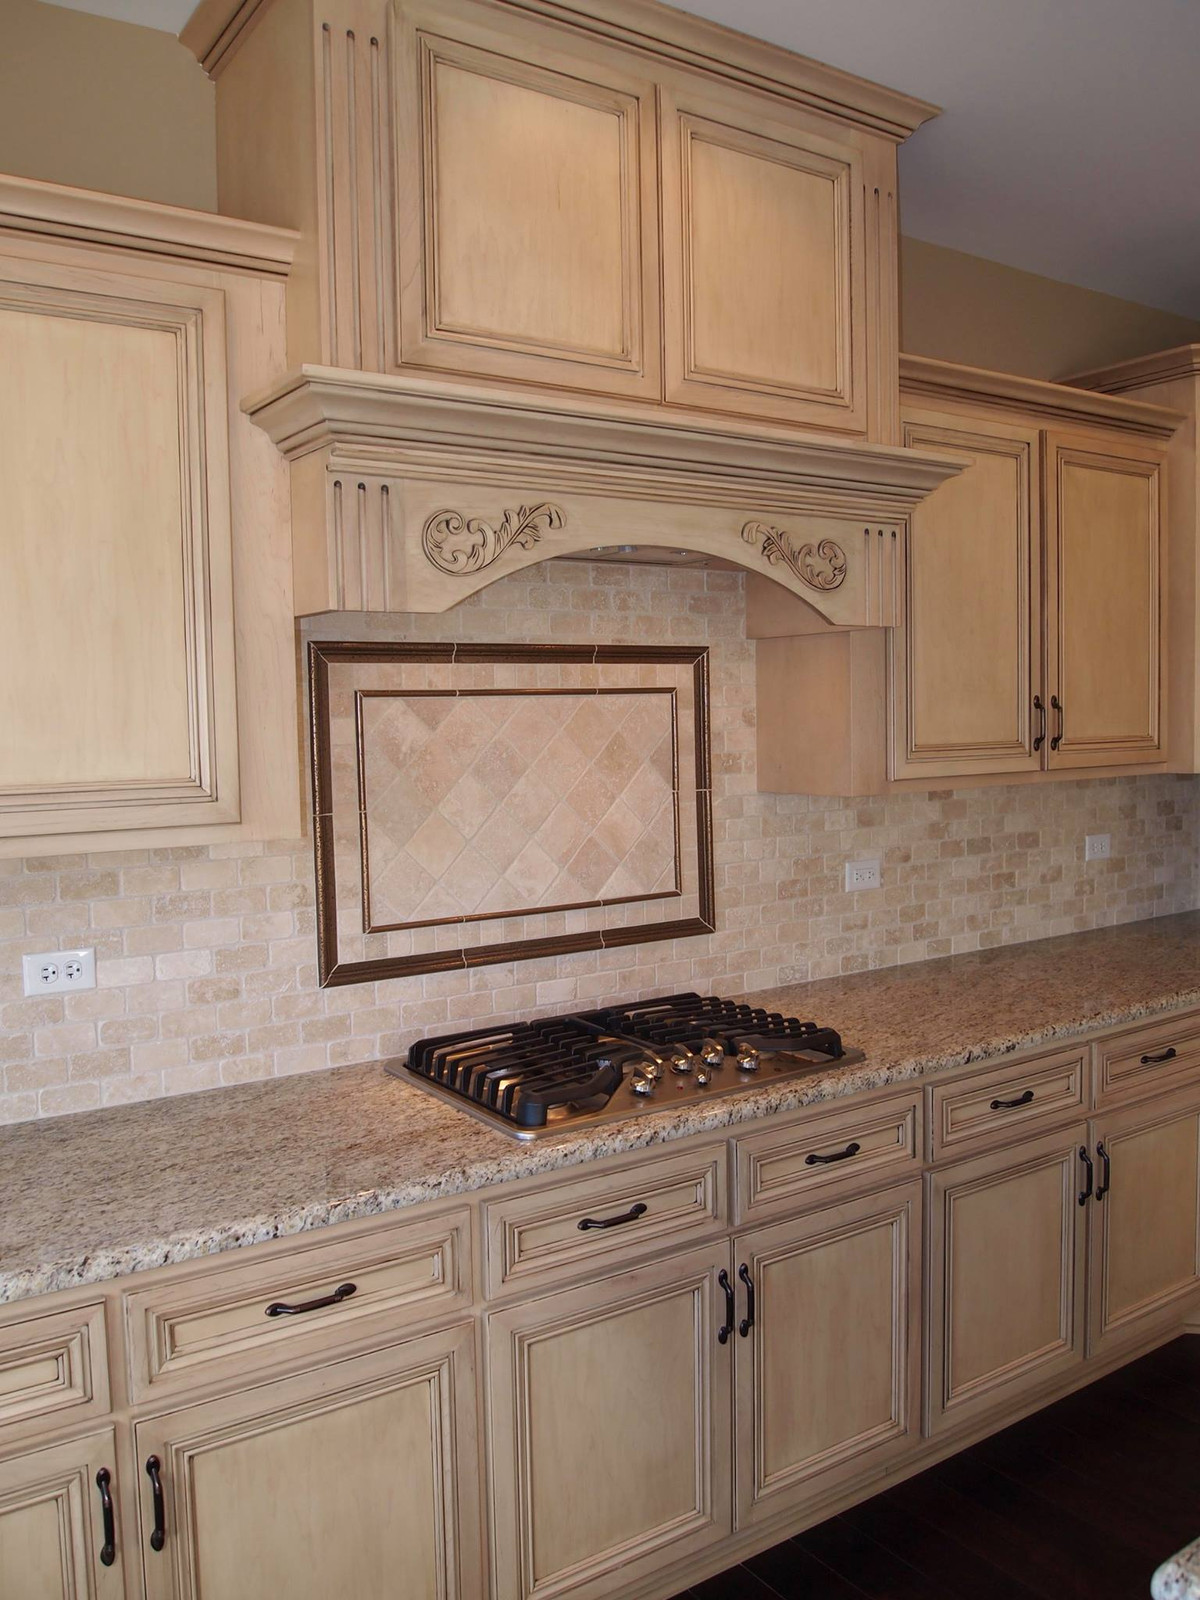 Antico Bianco Granite Kitchen Homer Glen Granite Countertops Insignia Stone Kitchen Projects